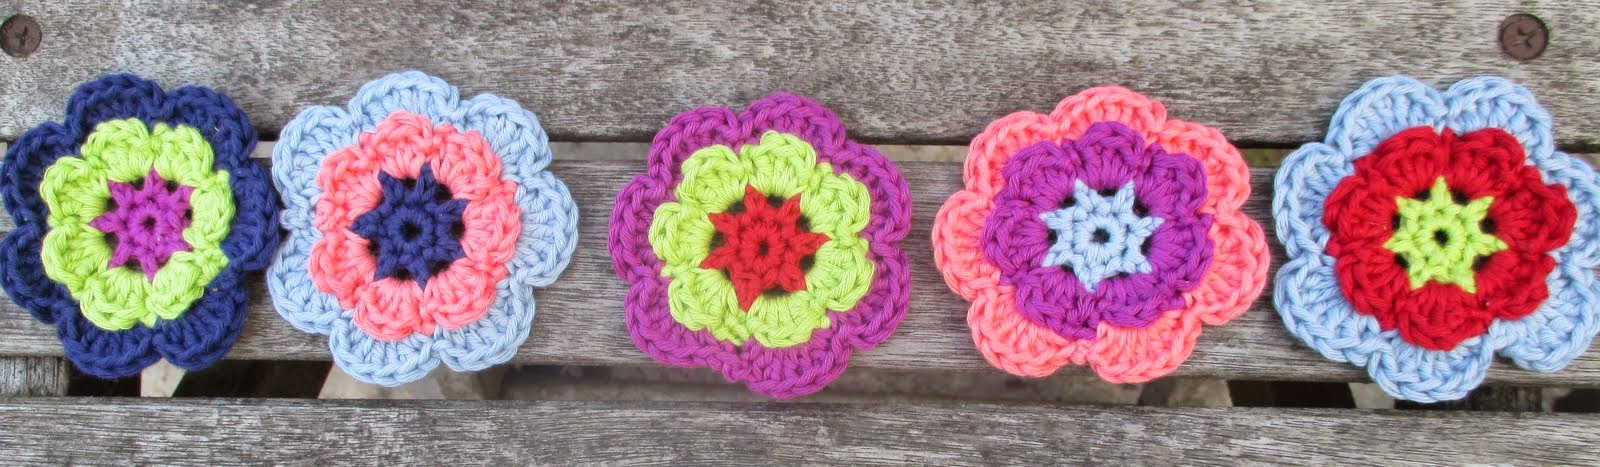 Crocheting Too Loose : ... better, flower flatter than the first, tension possibly too loose